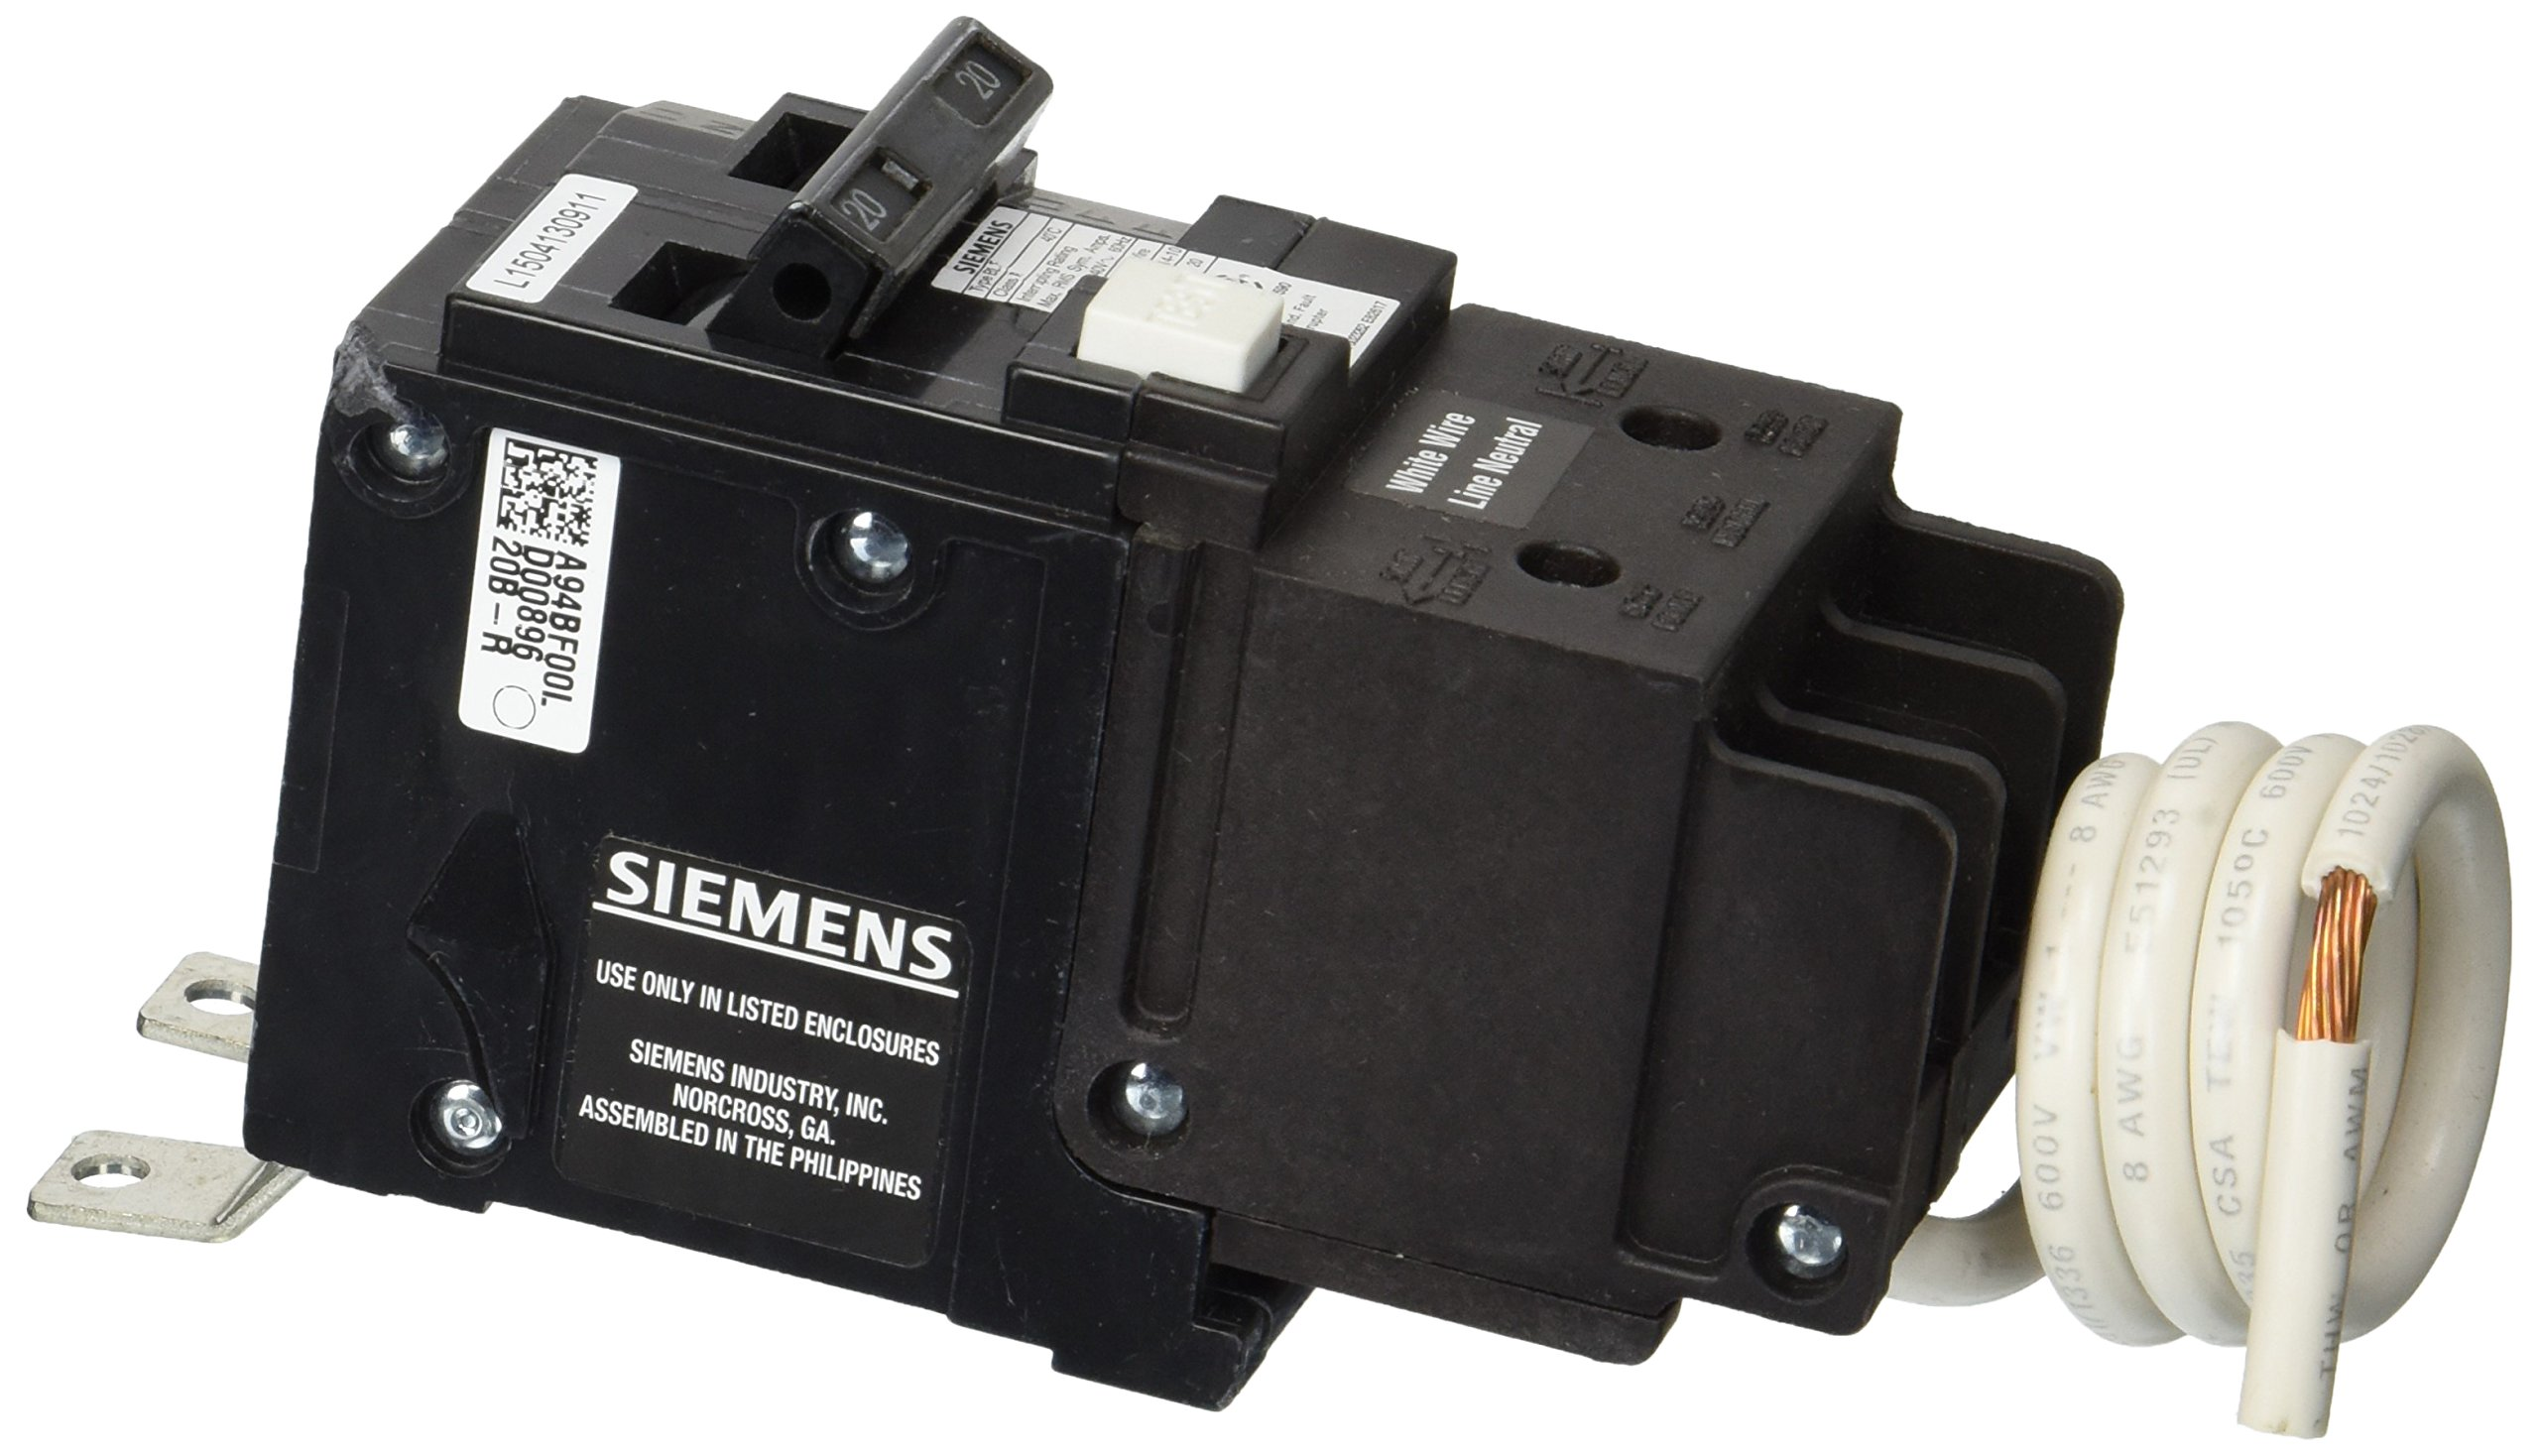 Siemens BF220 20-Amp Double Pole 120/240-Volt 10KAIC Ground Fault Circuit interrupter